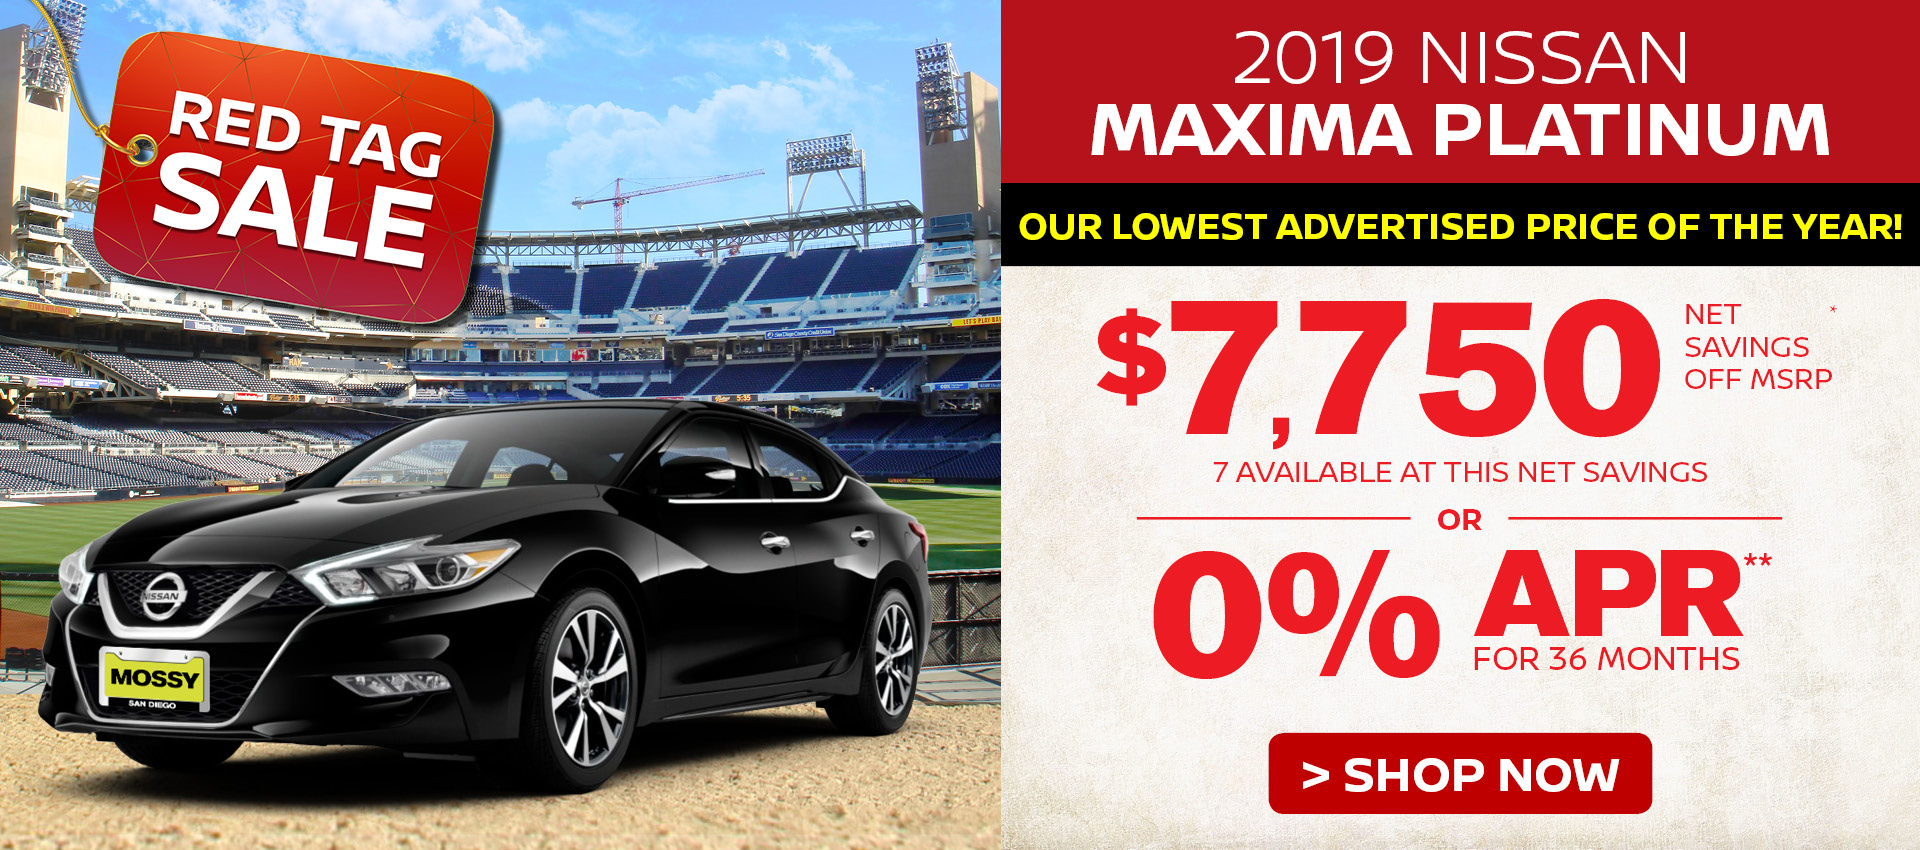 Mossy Nissan - Nissan Maxima $7,750 Off MSRP HP